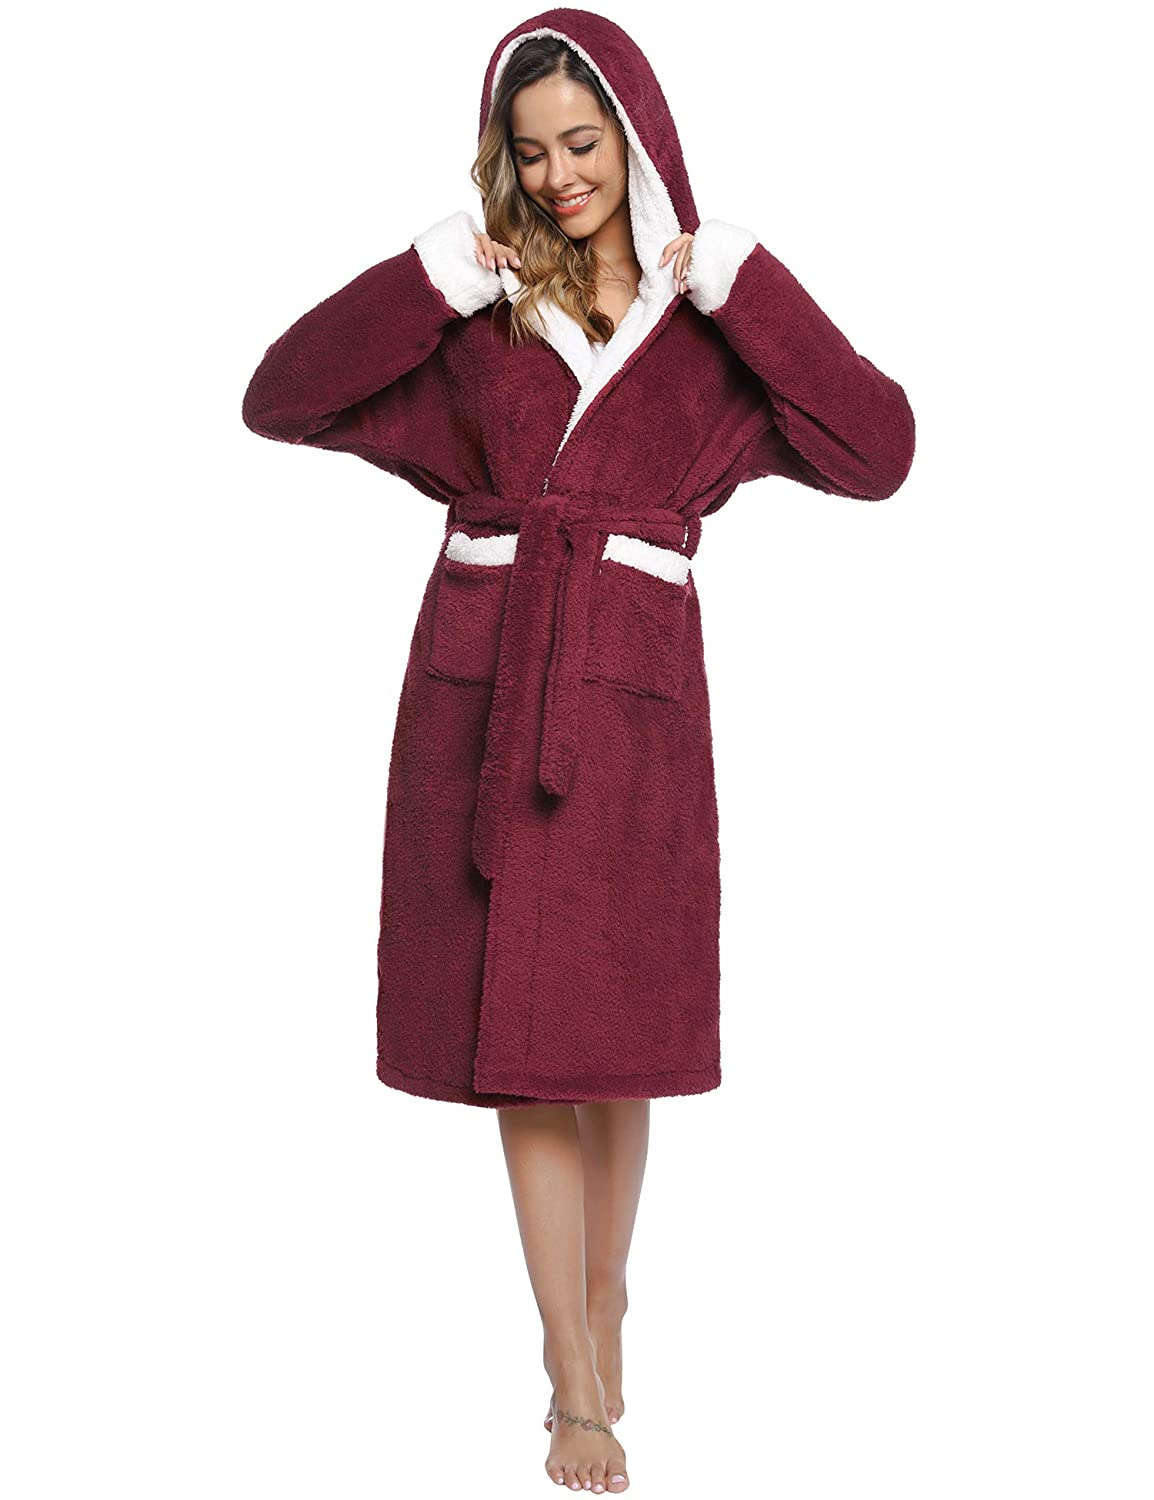 Sykooria Hooded Plush Fleece Robe for Women and Kids Warm Shawl Collar Contrast Color Family Mathing Bathrobe